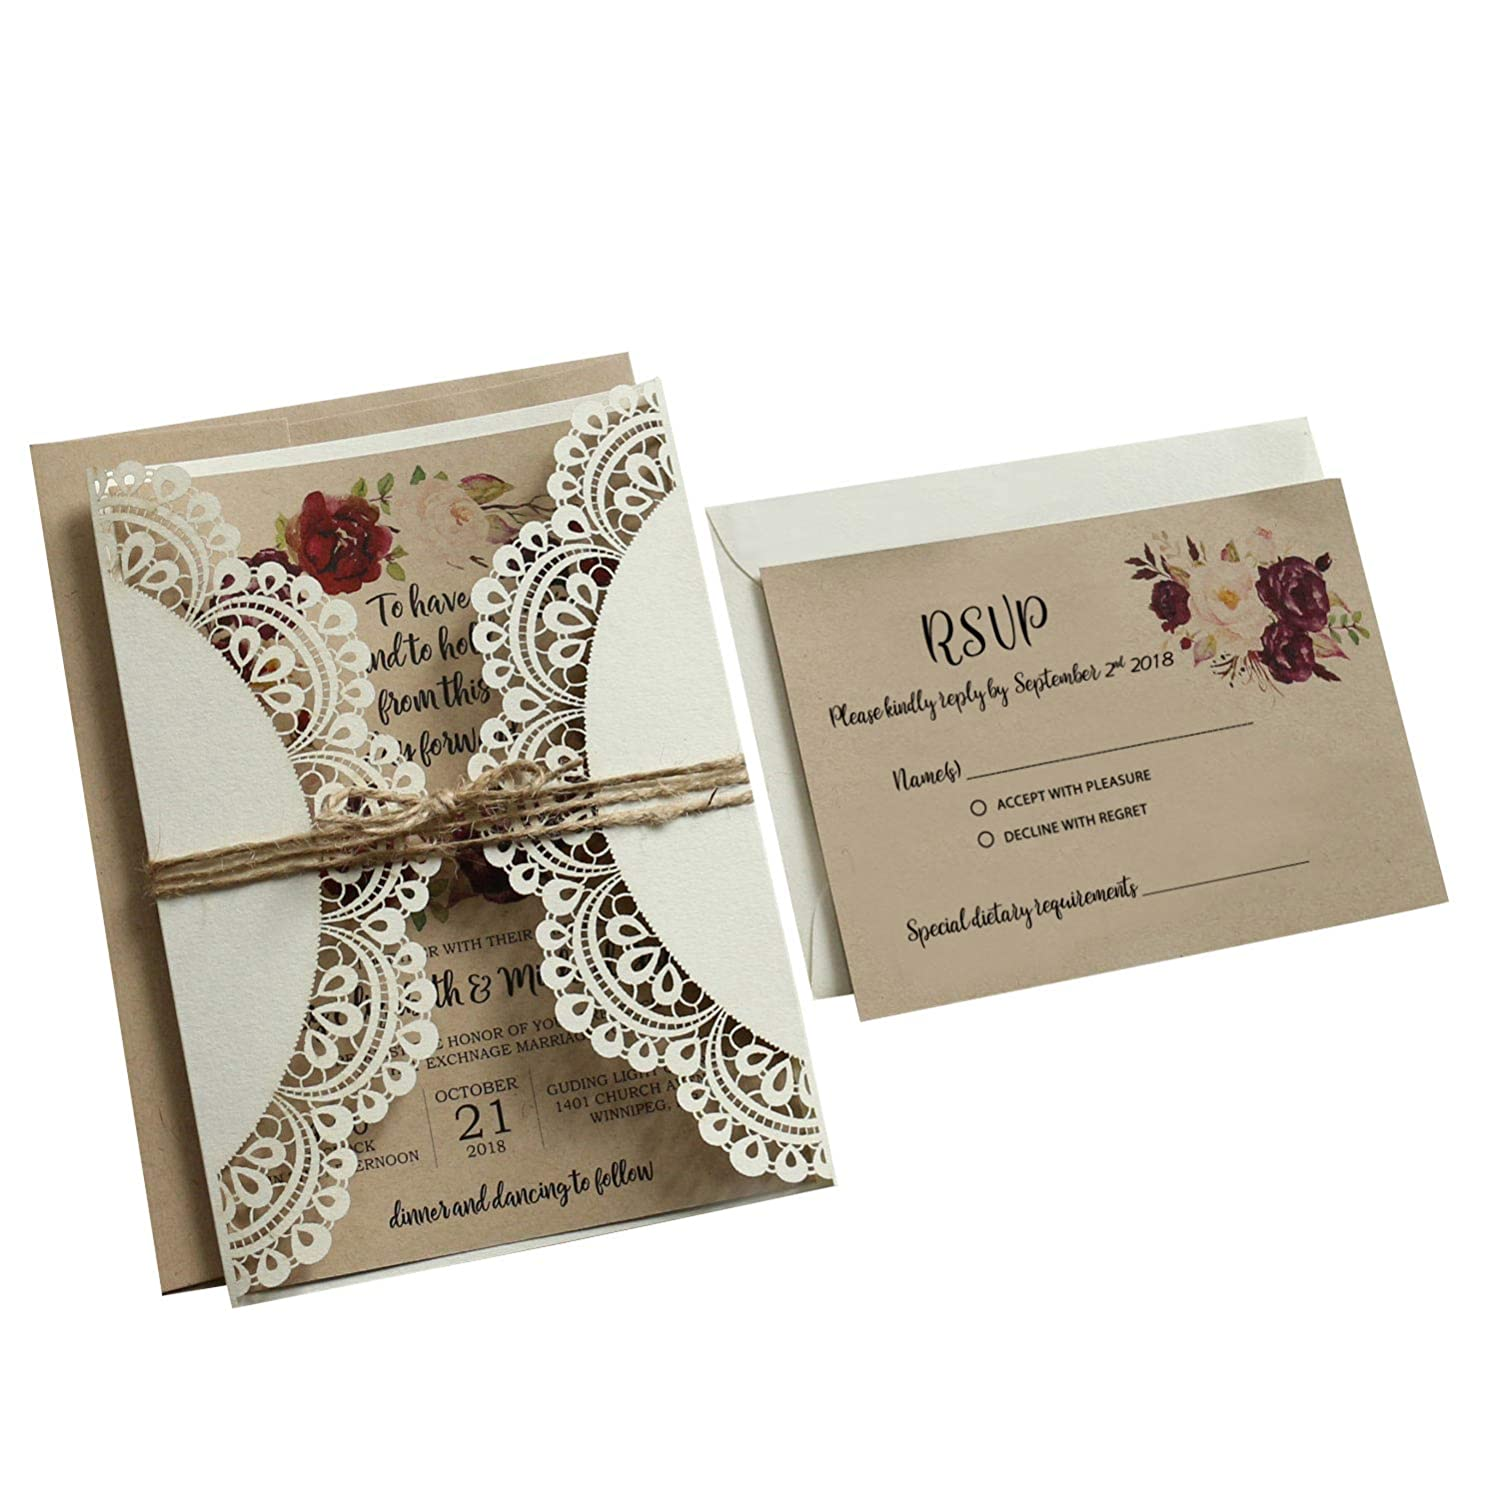 11d2a36fbc709 Wedding Invitations with RSVP Cards and Envelopes Rustic Invitations for  Wedding by Picky Bride 2...